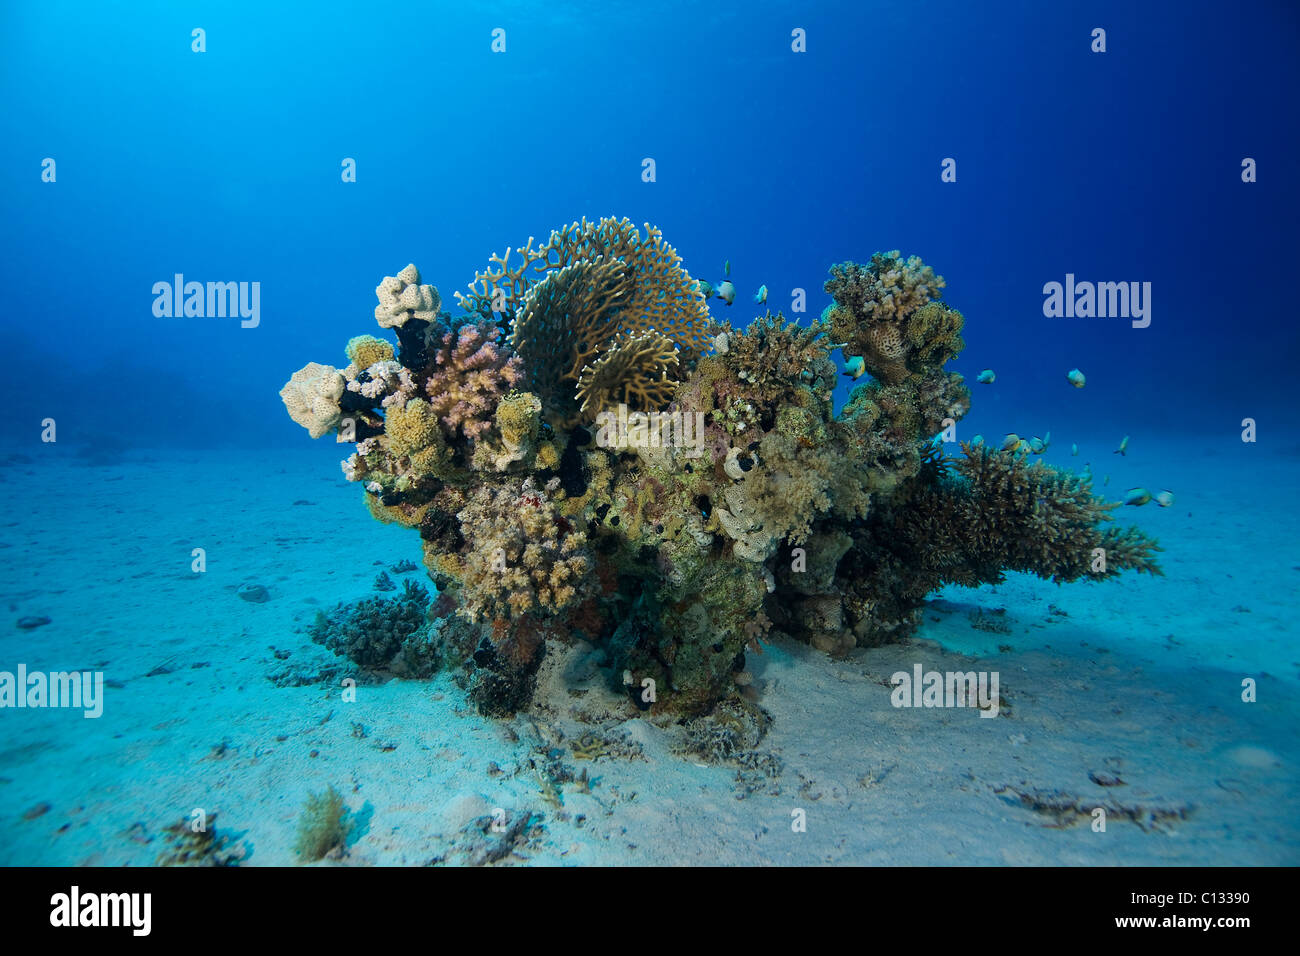 Coral bommie, Stingray City, Sharm El Sheikh, Red Sea - Stock Image